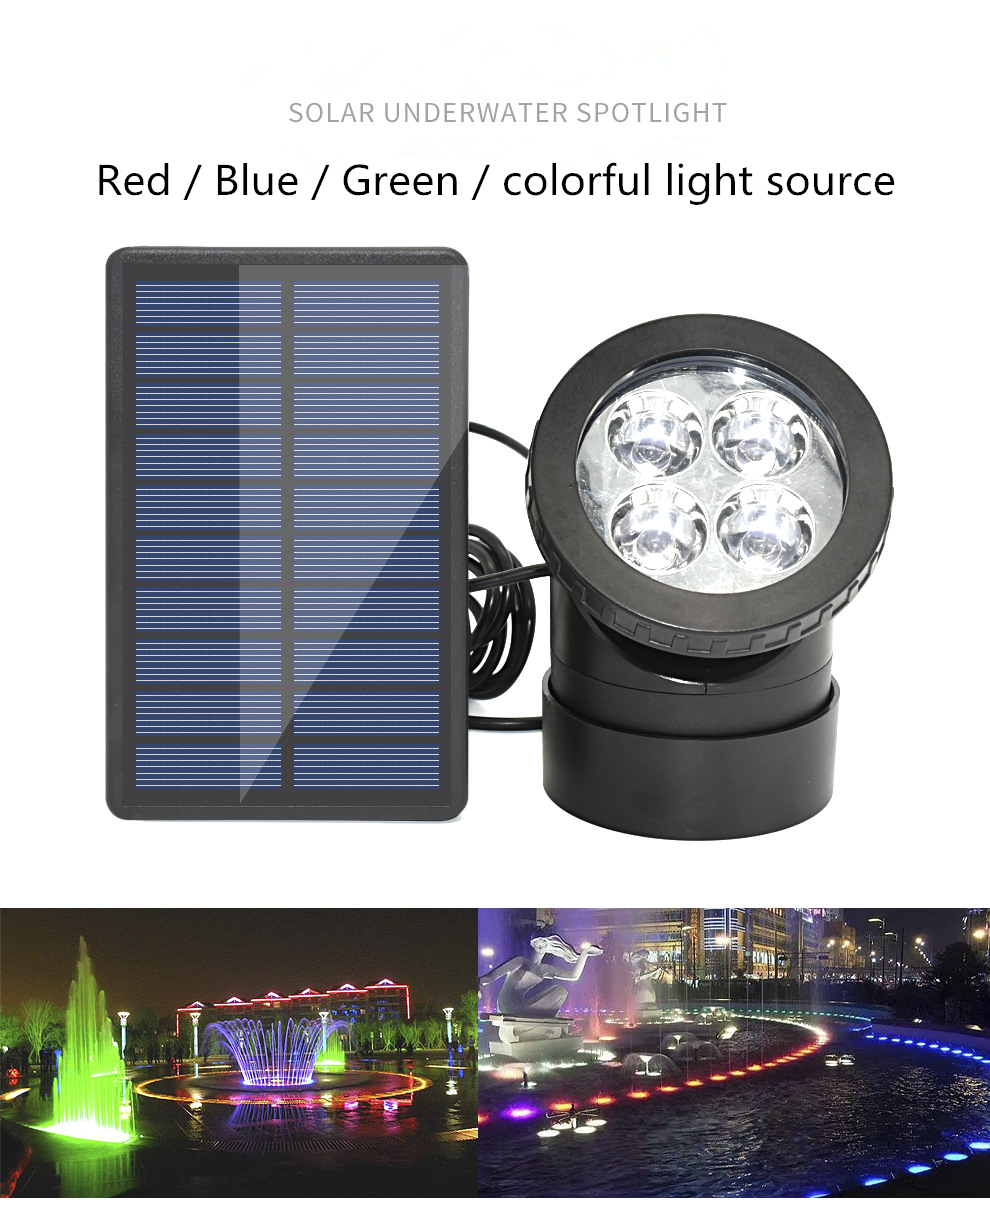 Rgb Solar Led Underwater Lights Pond Light Landscape Spotlight Ip68 Waterproof Submarine Projector Light For Pond Garden Lawn Led Underwater Lights Aliexpress